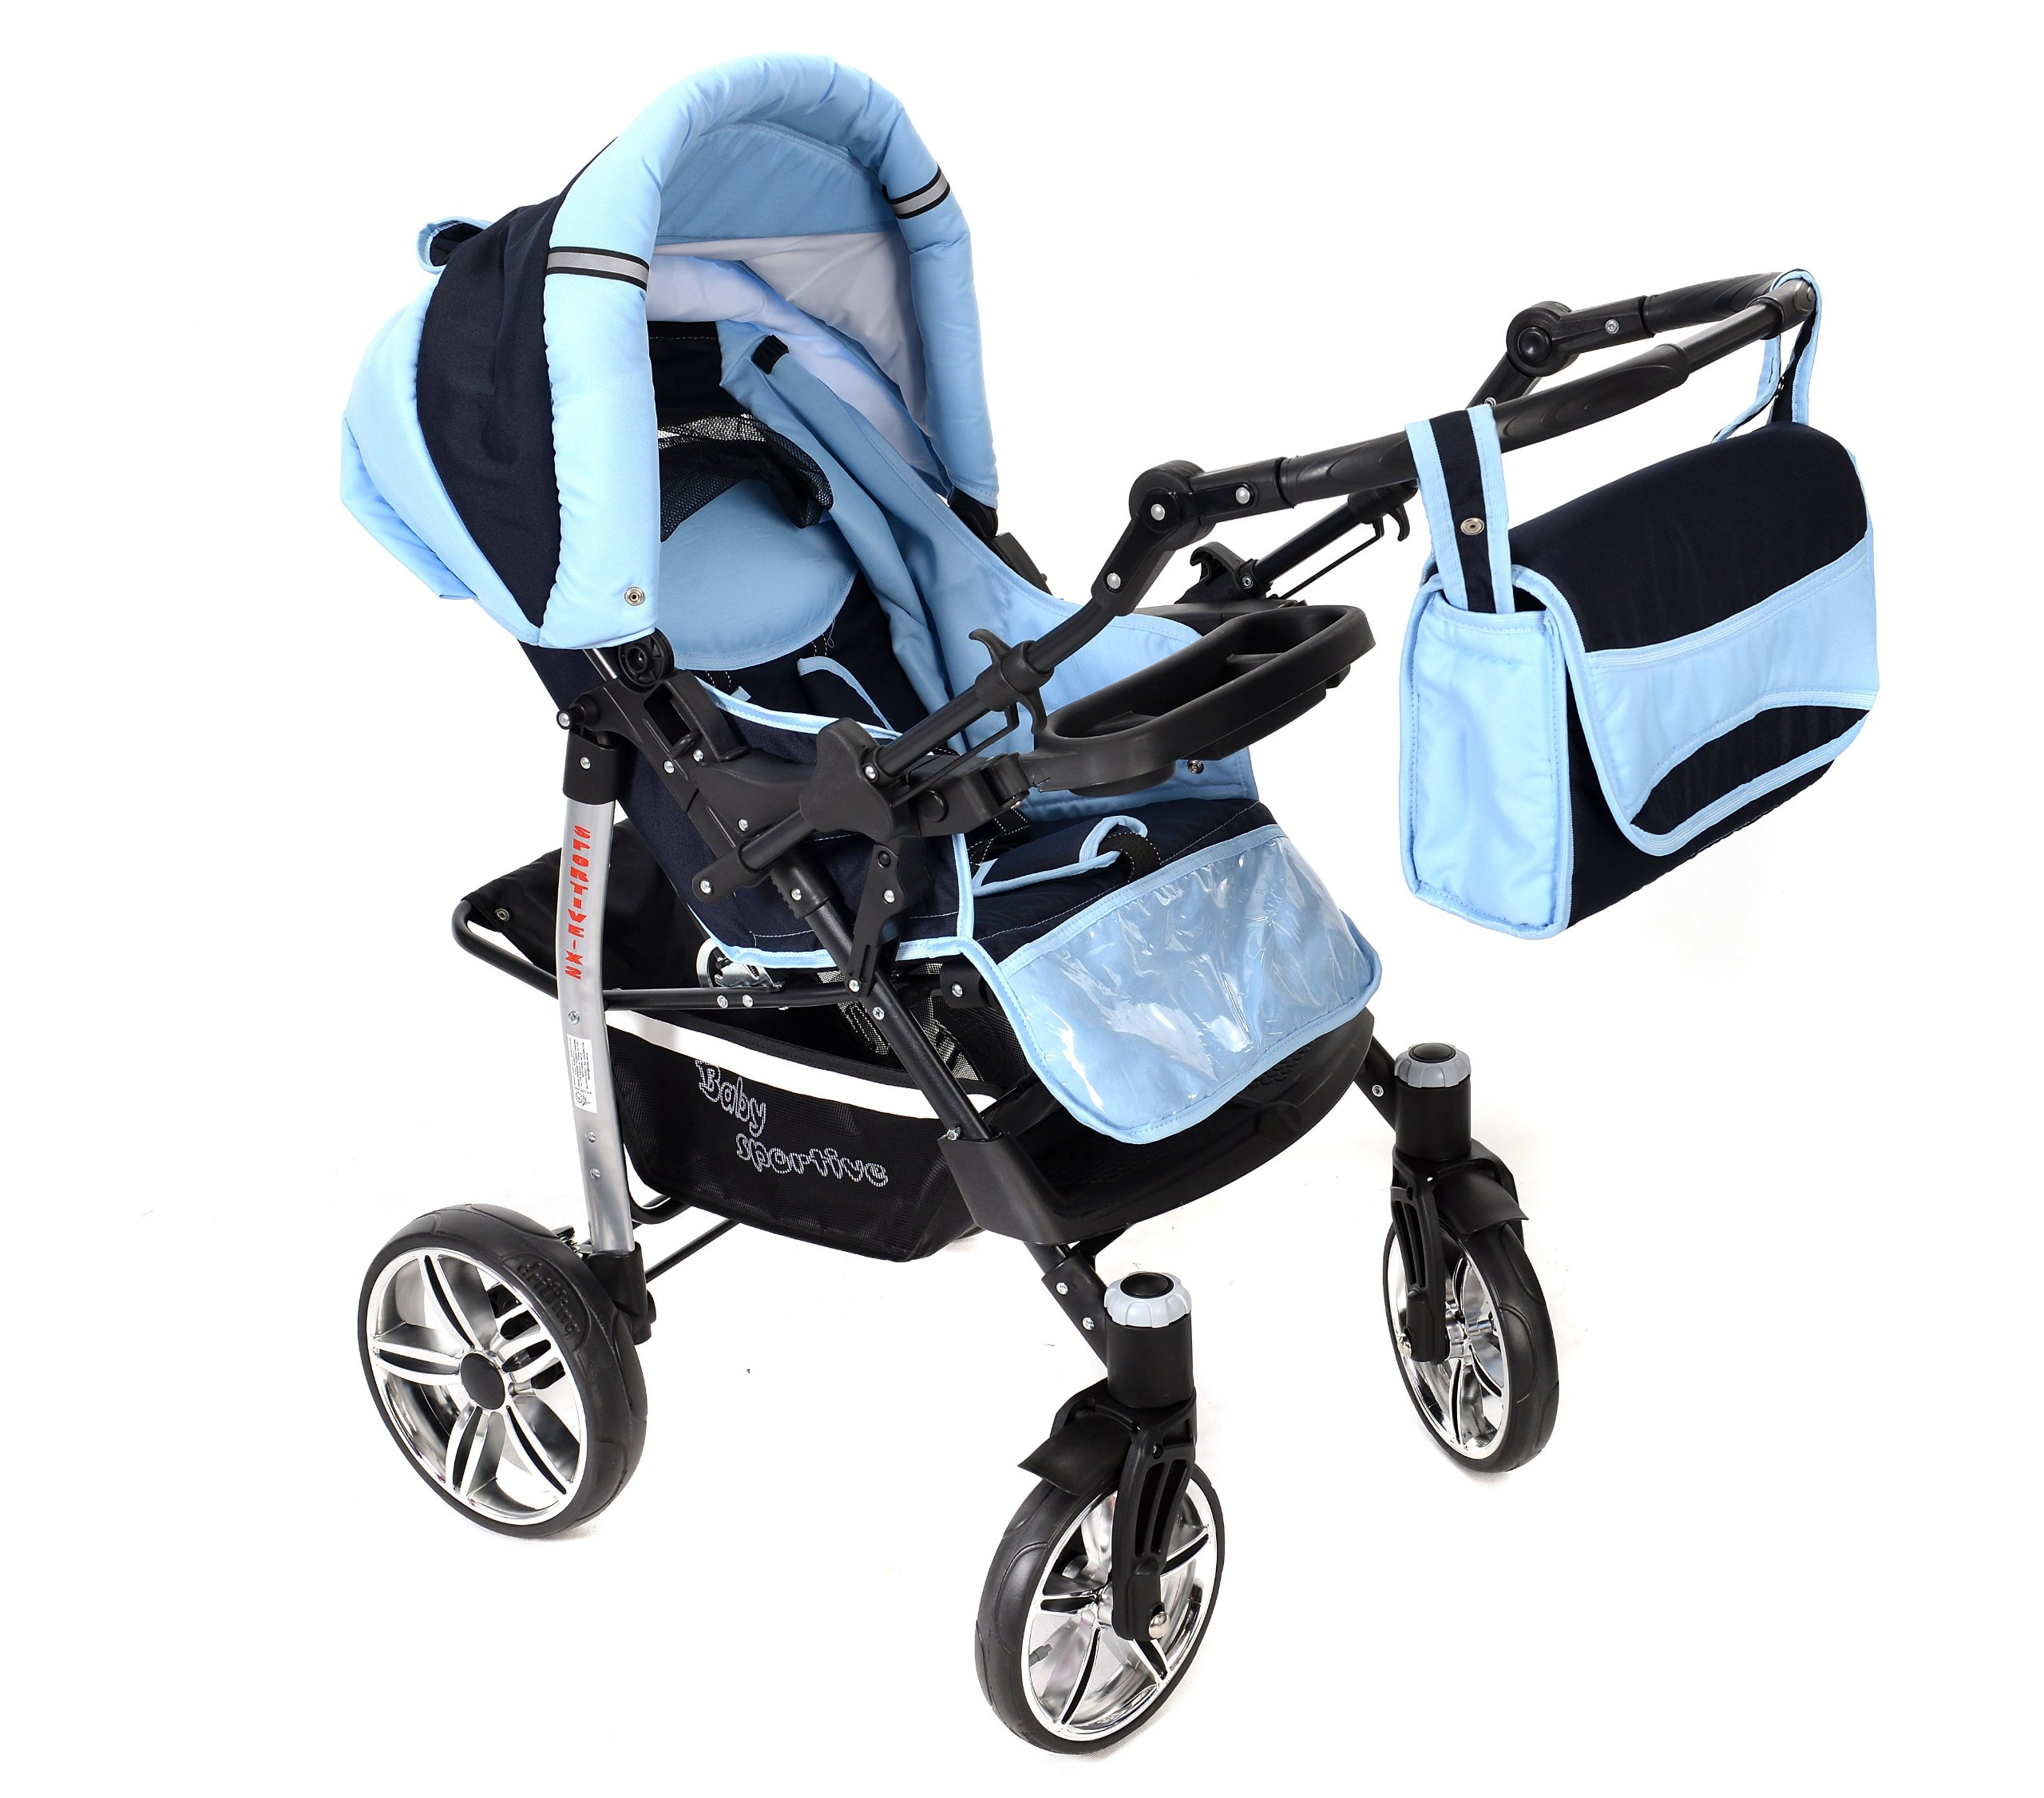 Sportive X2, 3-in-1 Travel System incl. Baby Pram with Swivel Wheels, Car Seat, Pushchair & Accessories (3-in-1 Travel System, Navy-Blue & Blue)  3 in 1 Travel System All in One Set - Pram, Car Carrier Seat and Sport Buggy + Accessories: carrier bag, rain protection, mosquito net, changing mat, removable bottle holder and removable tray for your child's bits and pieces Suitable from birth, Easy Quick Folding System; Large storage basket; Turnable handle bar that allows to face or rear the drive direction; Quick release rear wheels for easy cleaning after muddy walks Front lockable 360o swivel wheels for manoeuvrability , Small sized when folded, fits into many small car trunks, Carry-cot with a removable hood, Reflective elements for better visibility 4